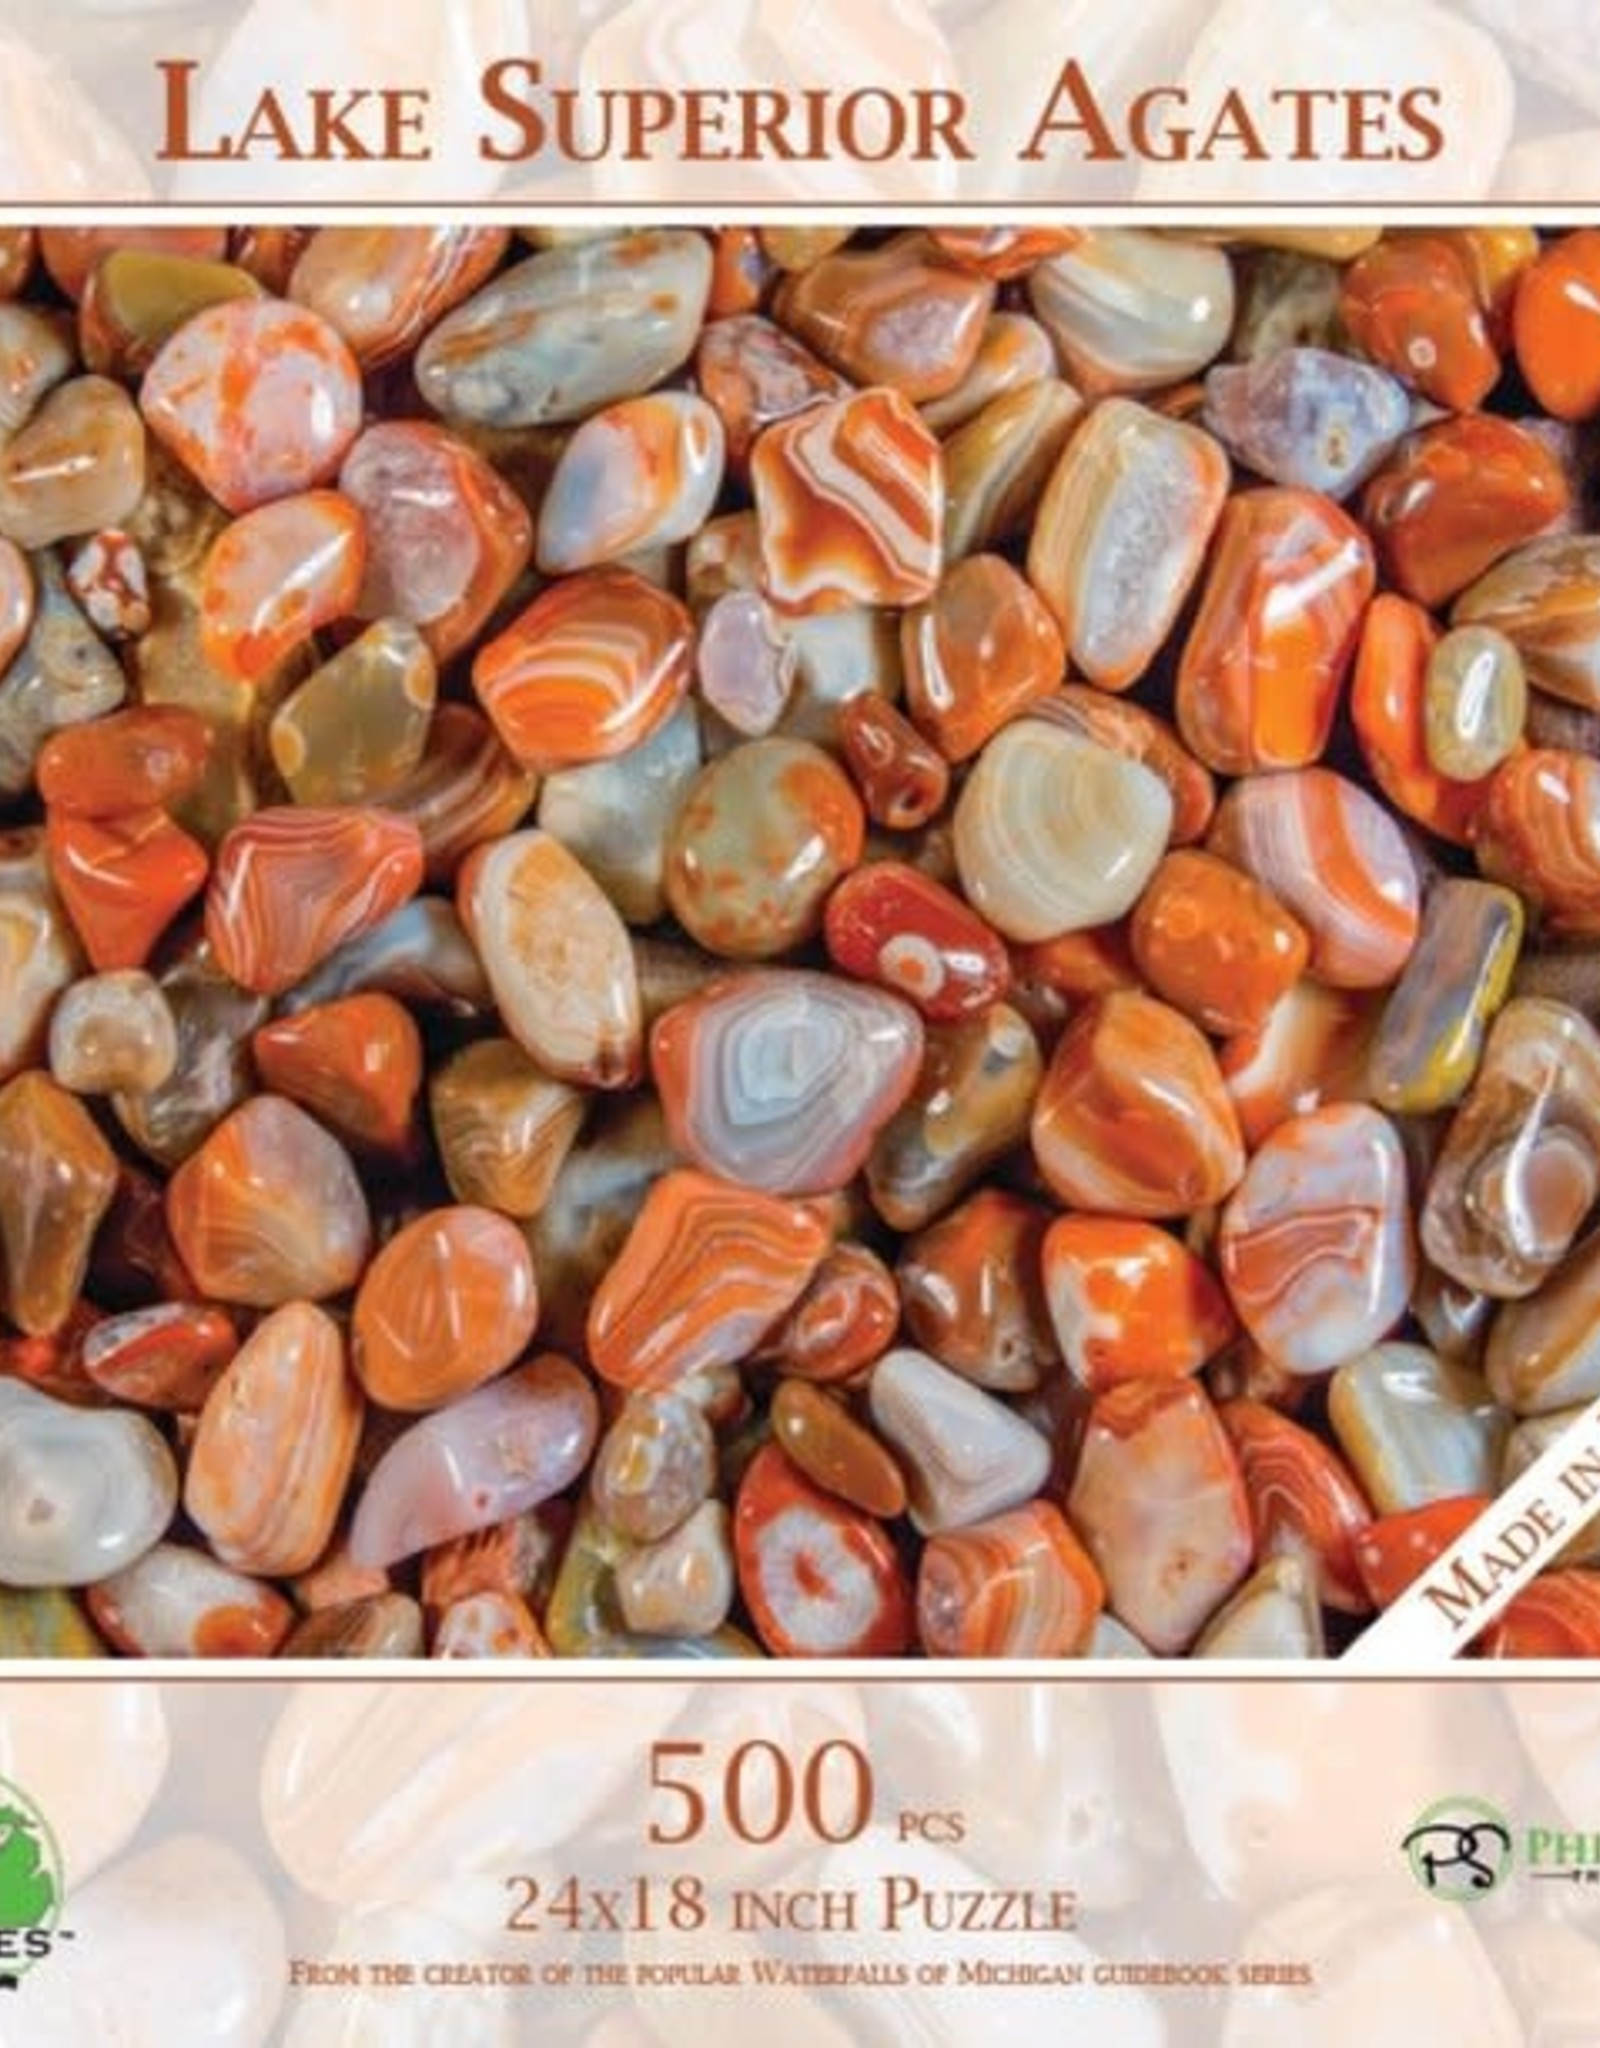 MI Puzzles (Phil Stagg Photography) 500 Piece  Puzzle Lake Superior Agates